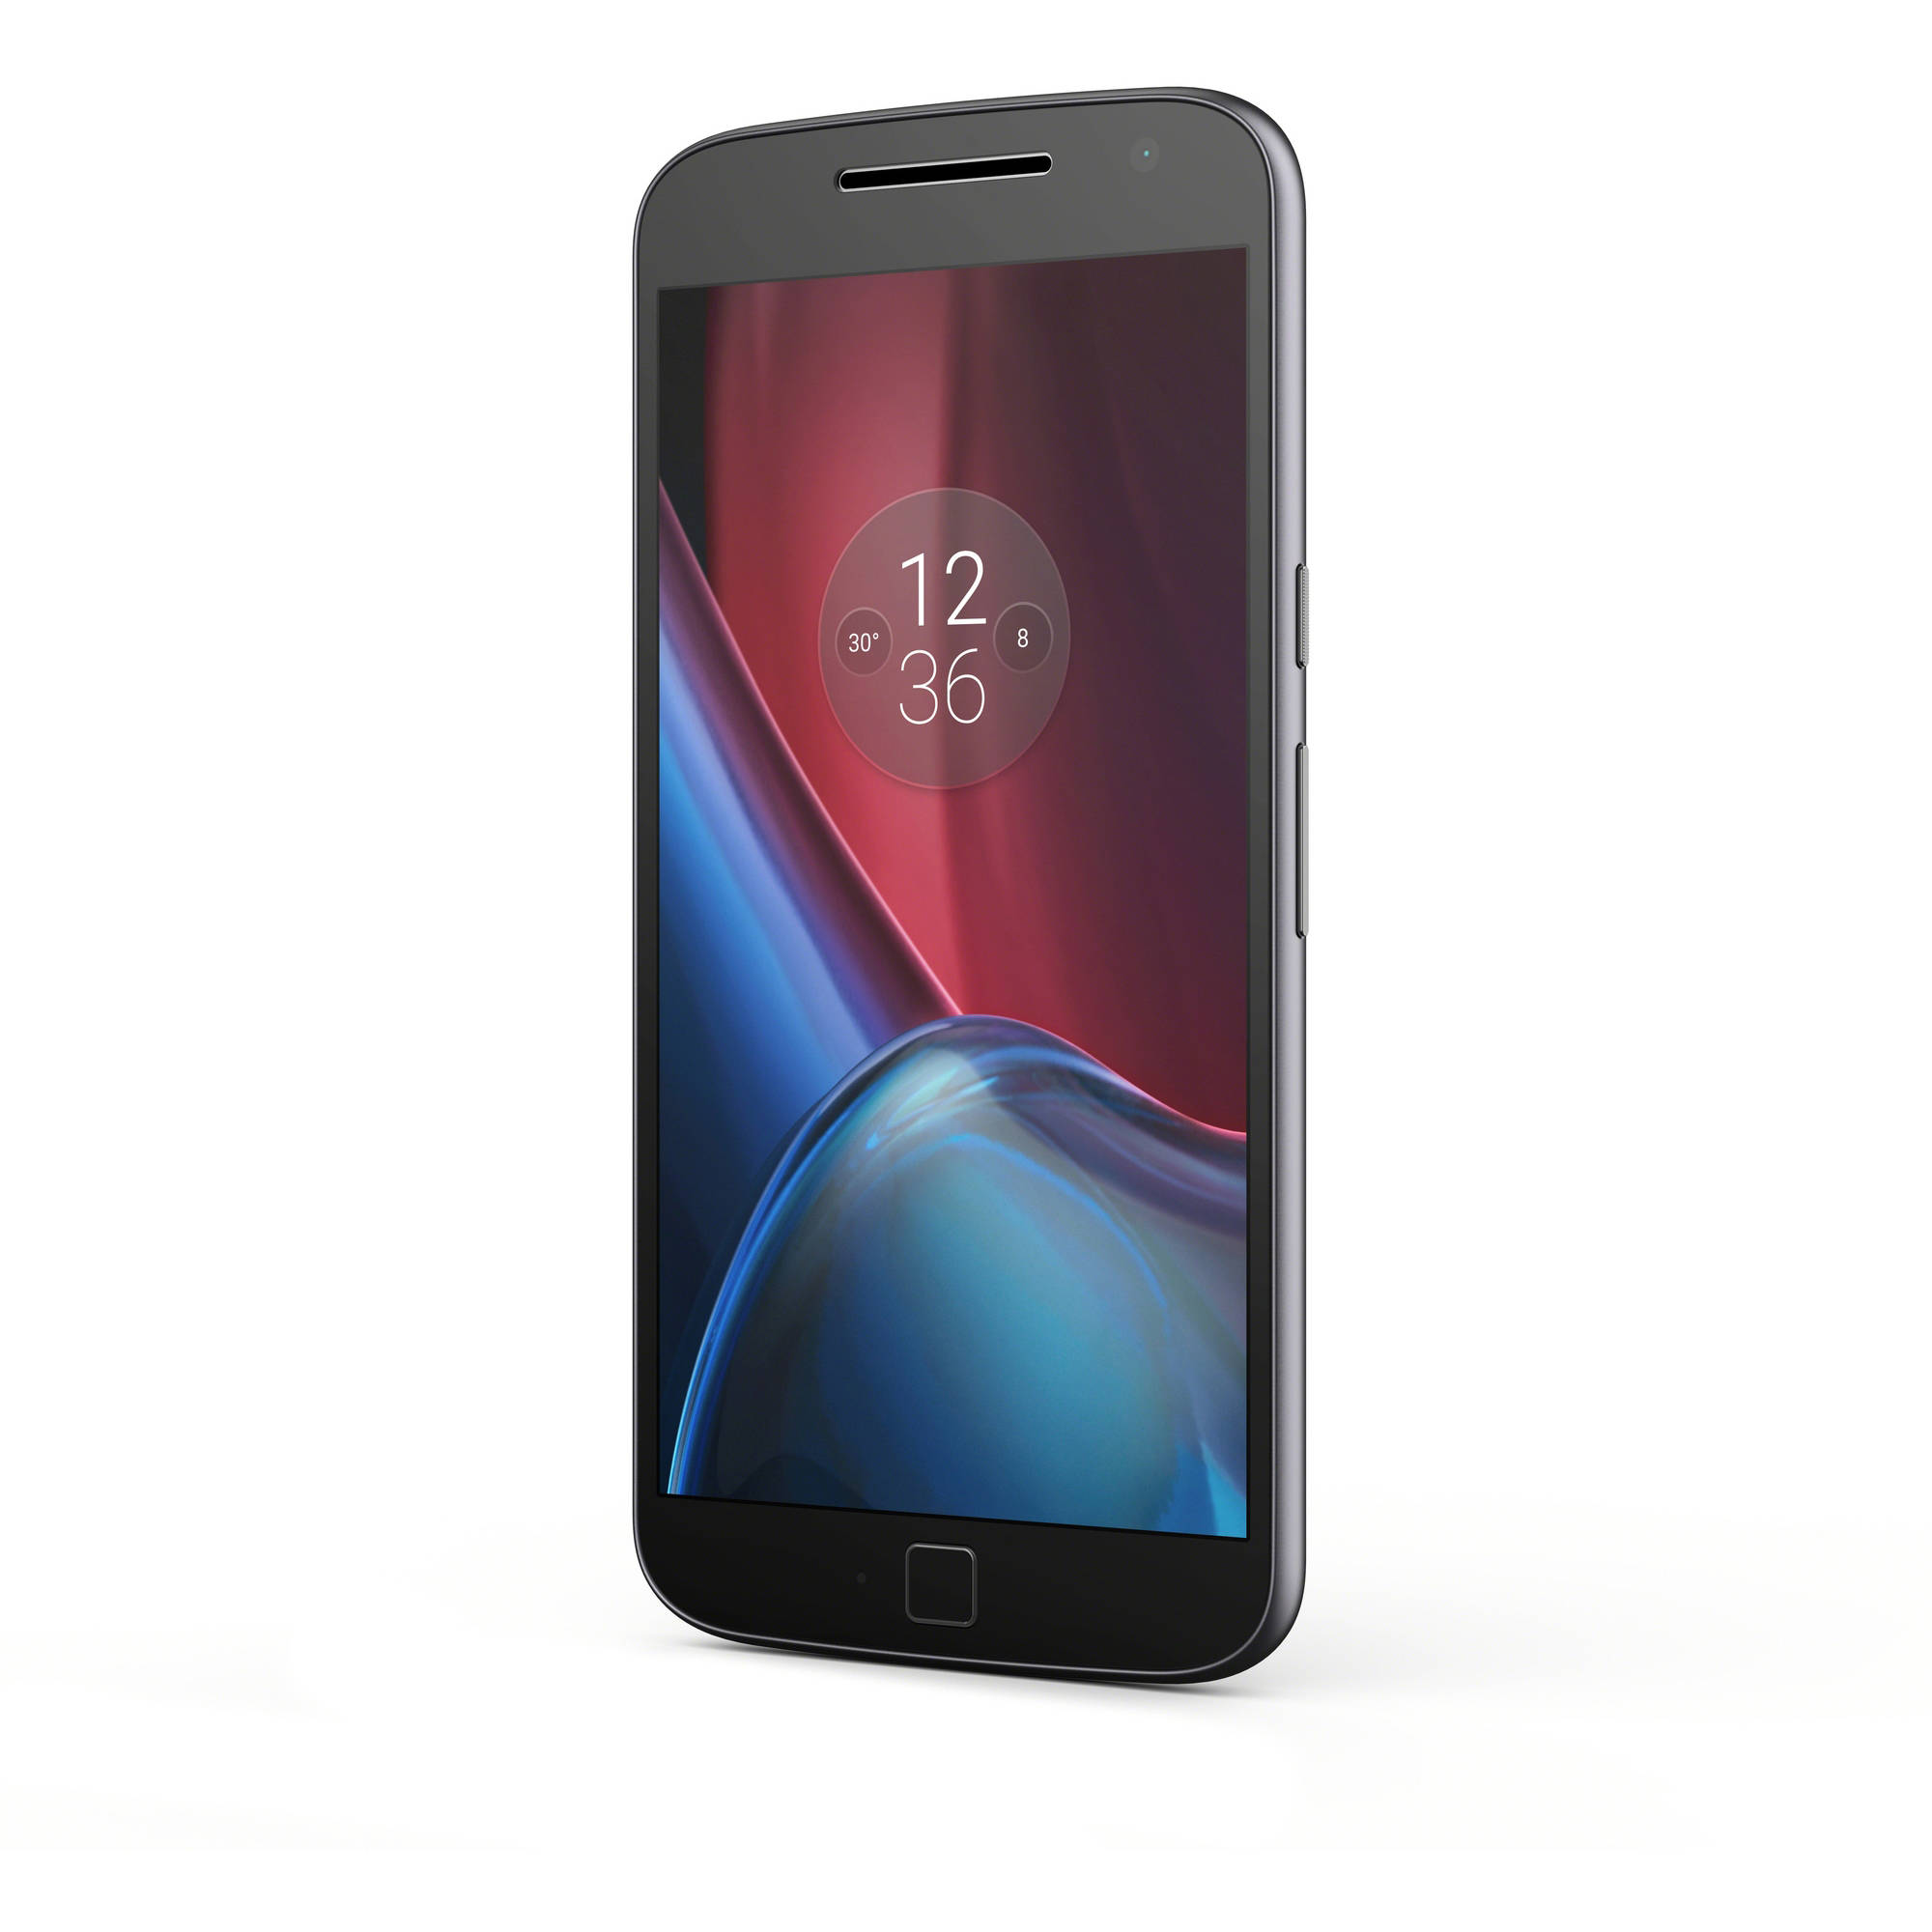 Motorola Moto G4 Plus 16GB Smartphone (Unlocked), Black